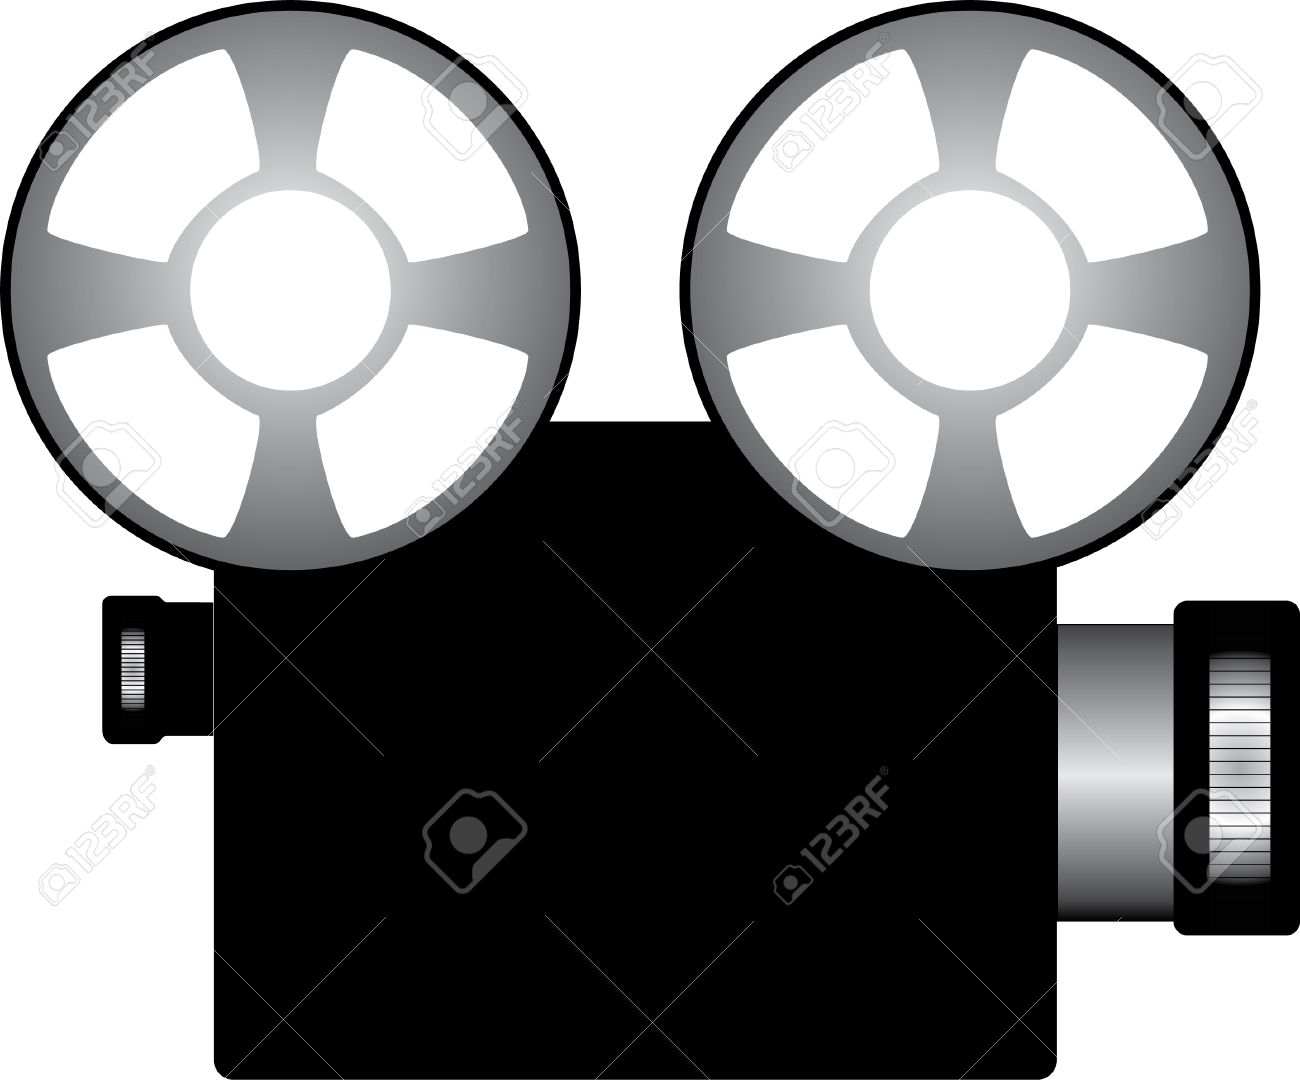 61 Filmophil Cliparts, Stock Vector And Royalty Free Filmophil ...